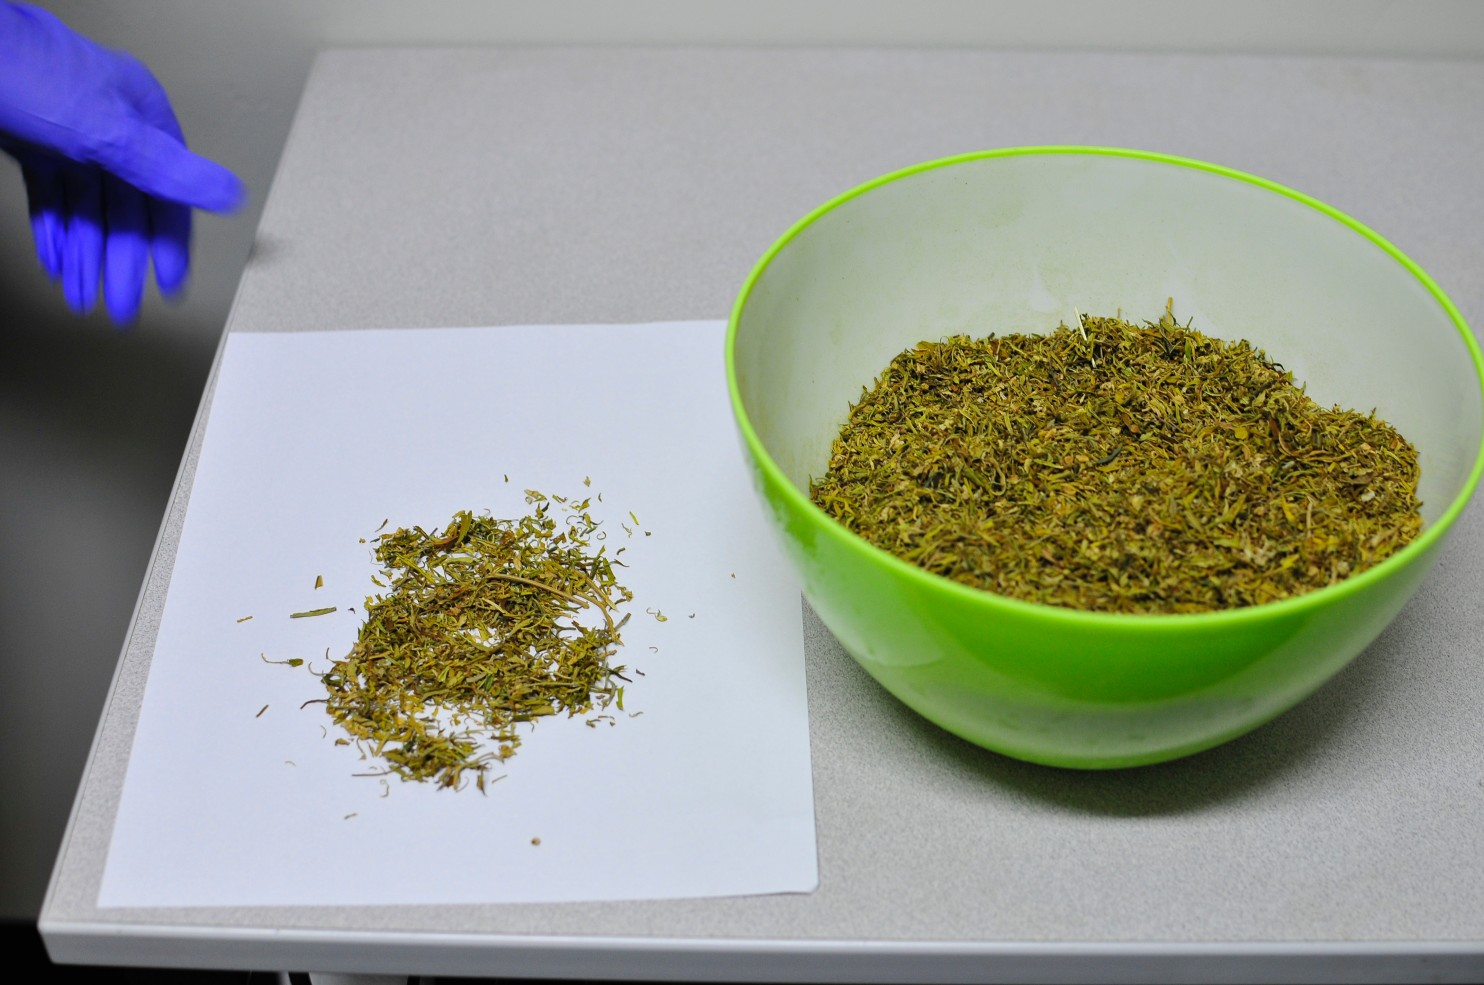 Nida-supplied marijuana, as received by Sue Sisley. (Multidisciplinary Association for Psychedelic Studies)